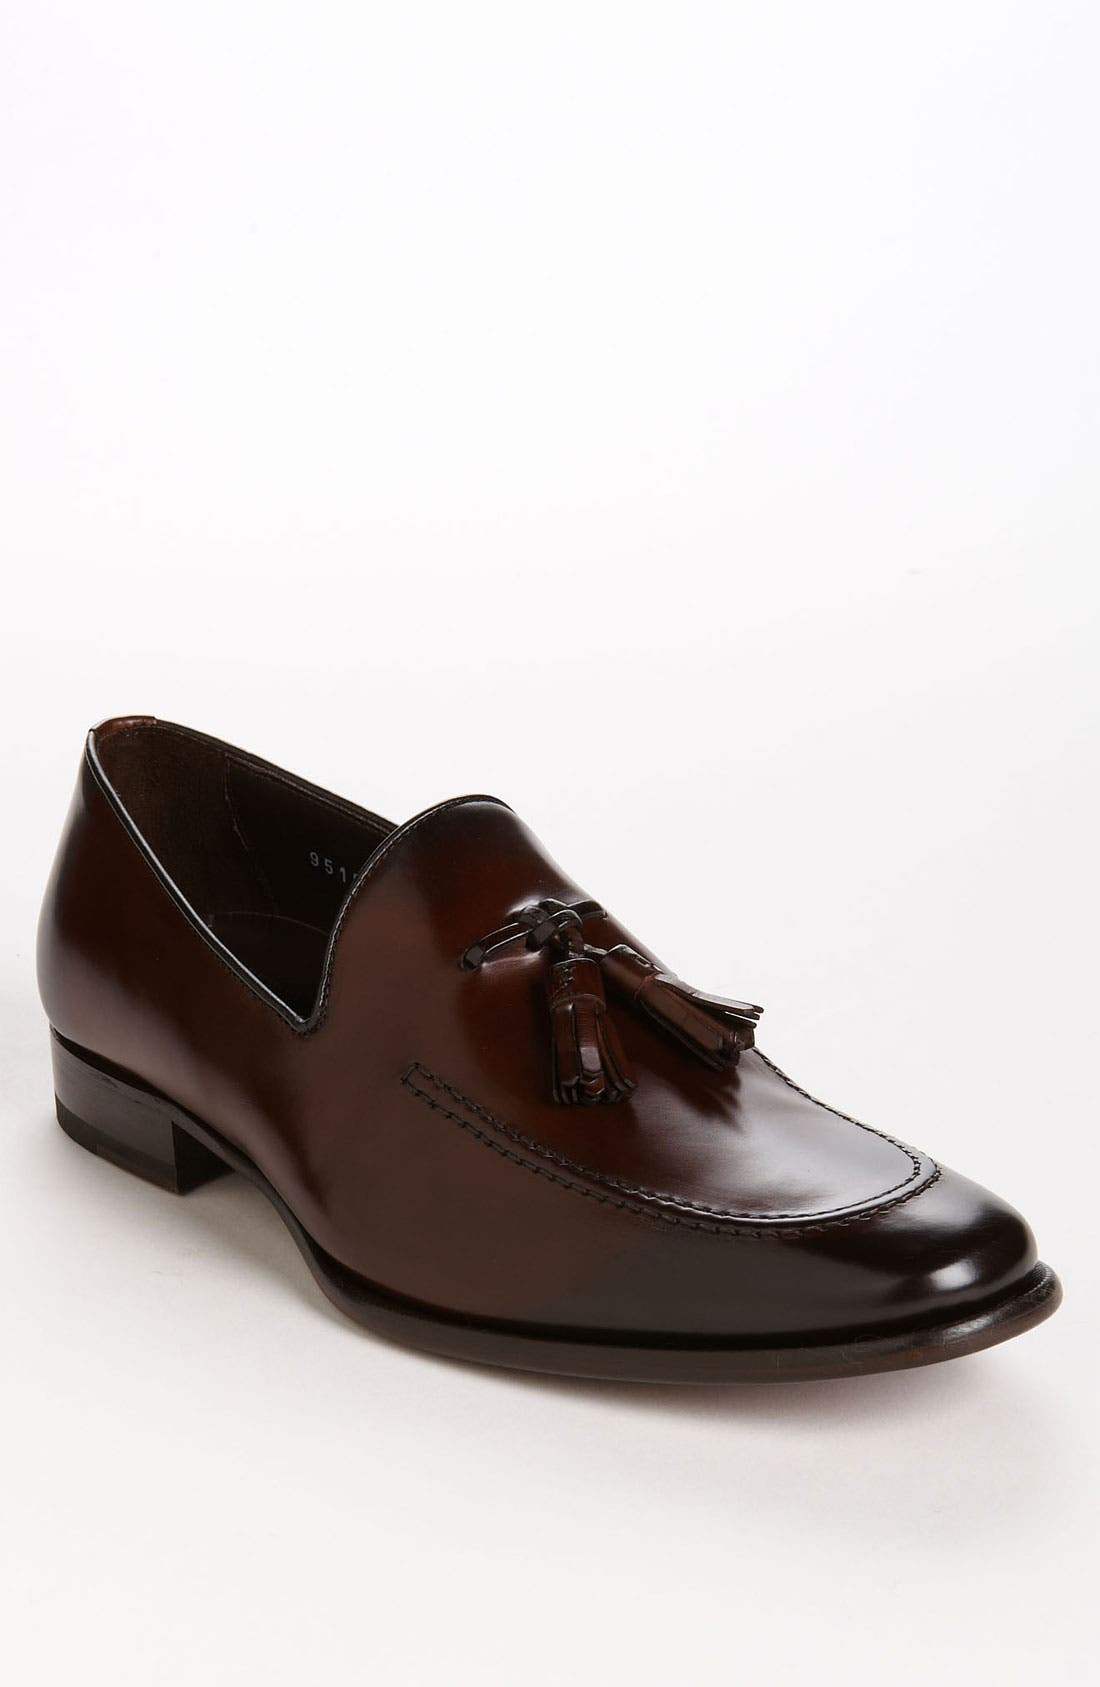 Alternate Image 1 Selected - To Boot New York 'Alex' Tassel Loafer